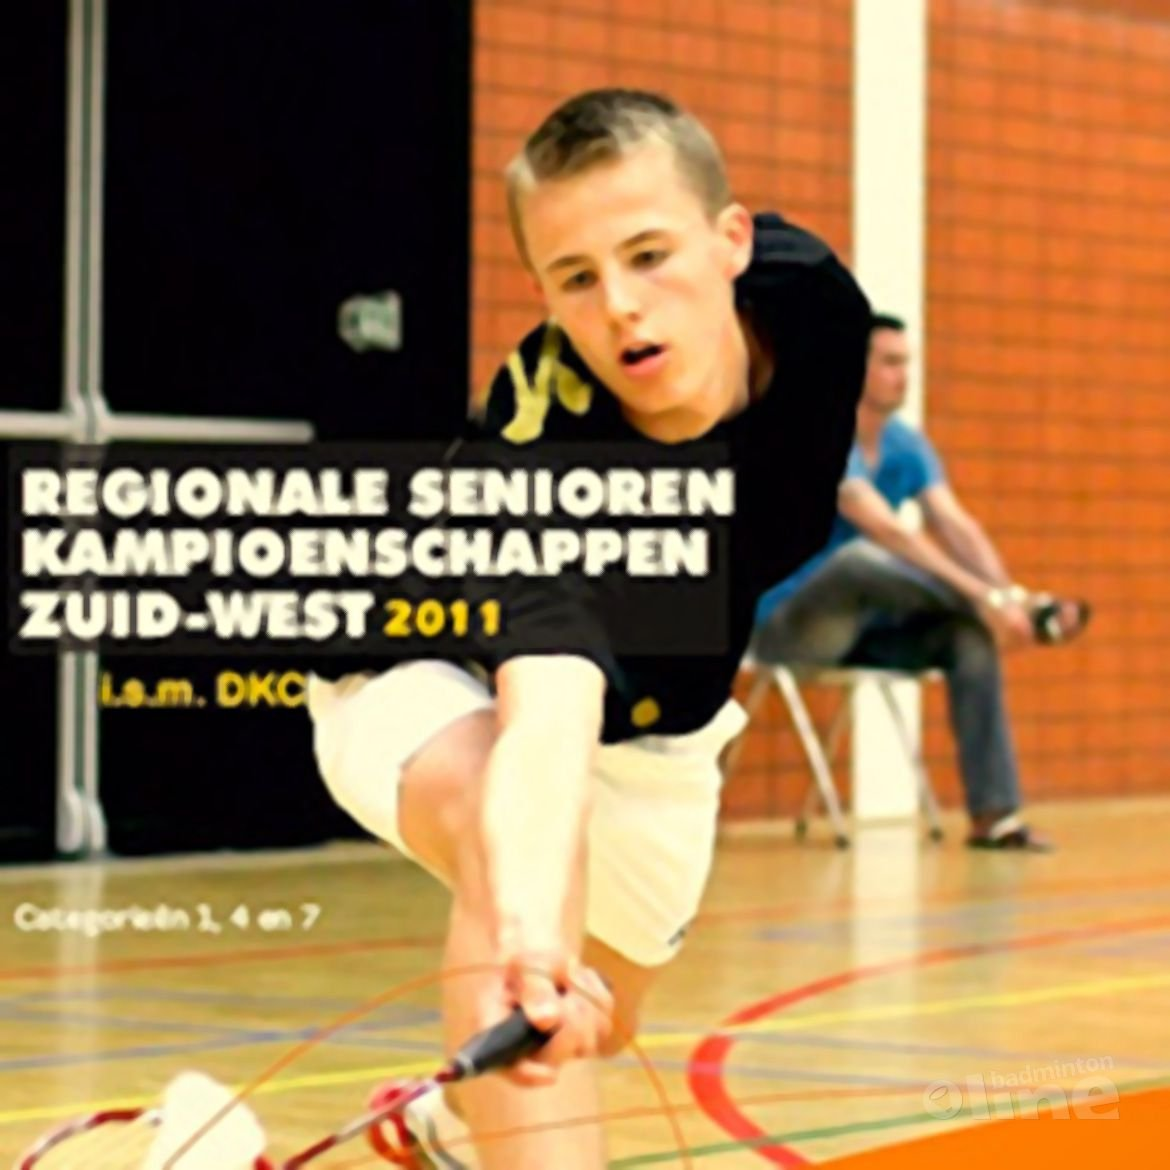 Inschrijving RSK Zuid-West geopend